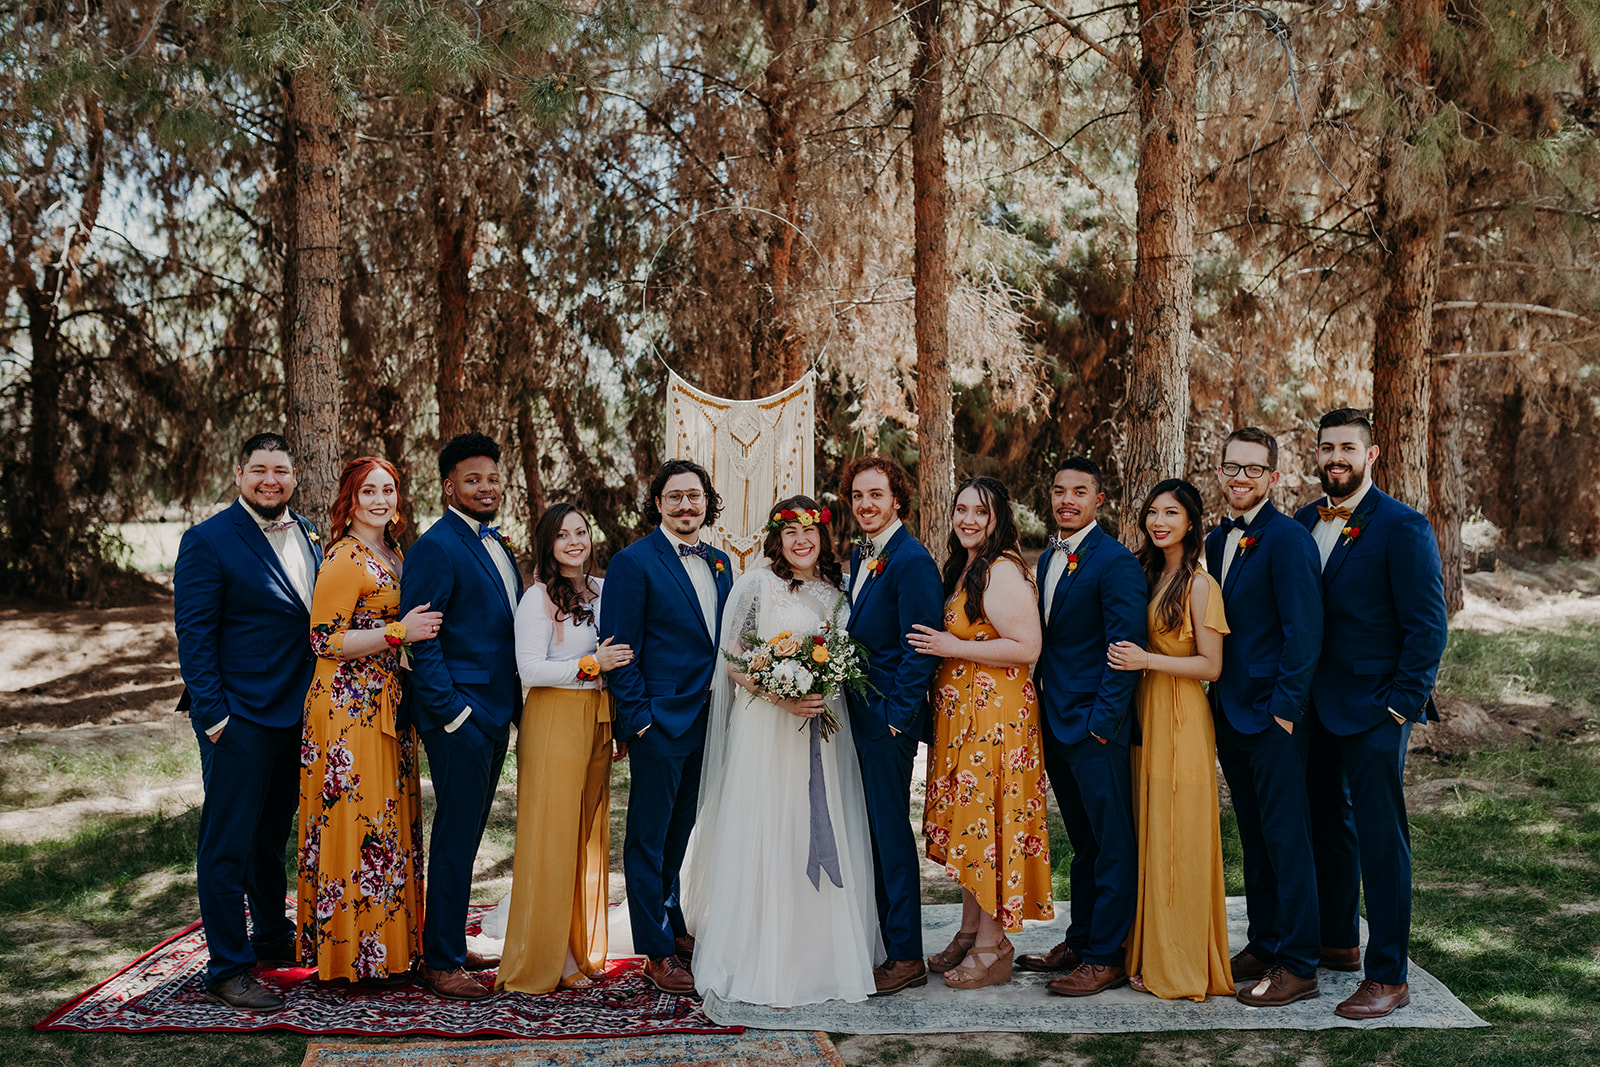 Disney Themed Wedding - Arizona florist Phoenix scottsdale Mesa chandler Sedona Flagstaff Prescott - Bridal Party in Mustard and Navy